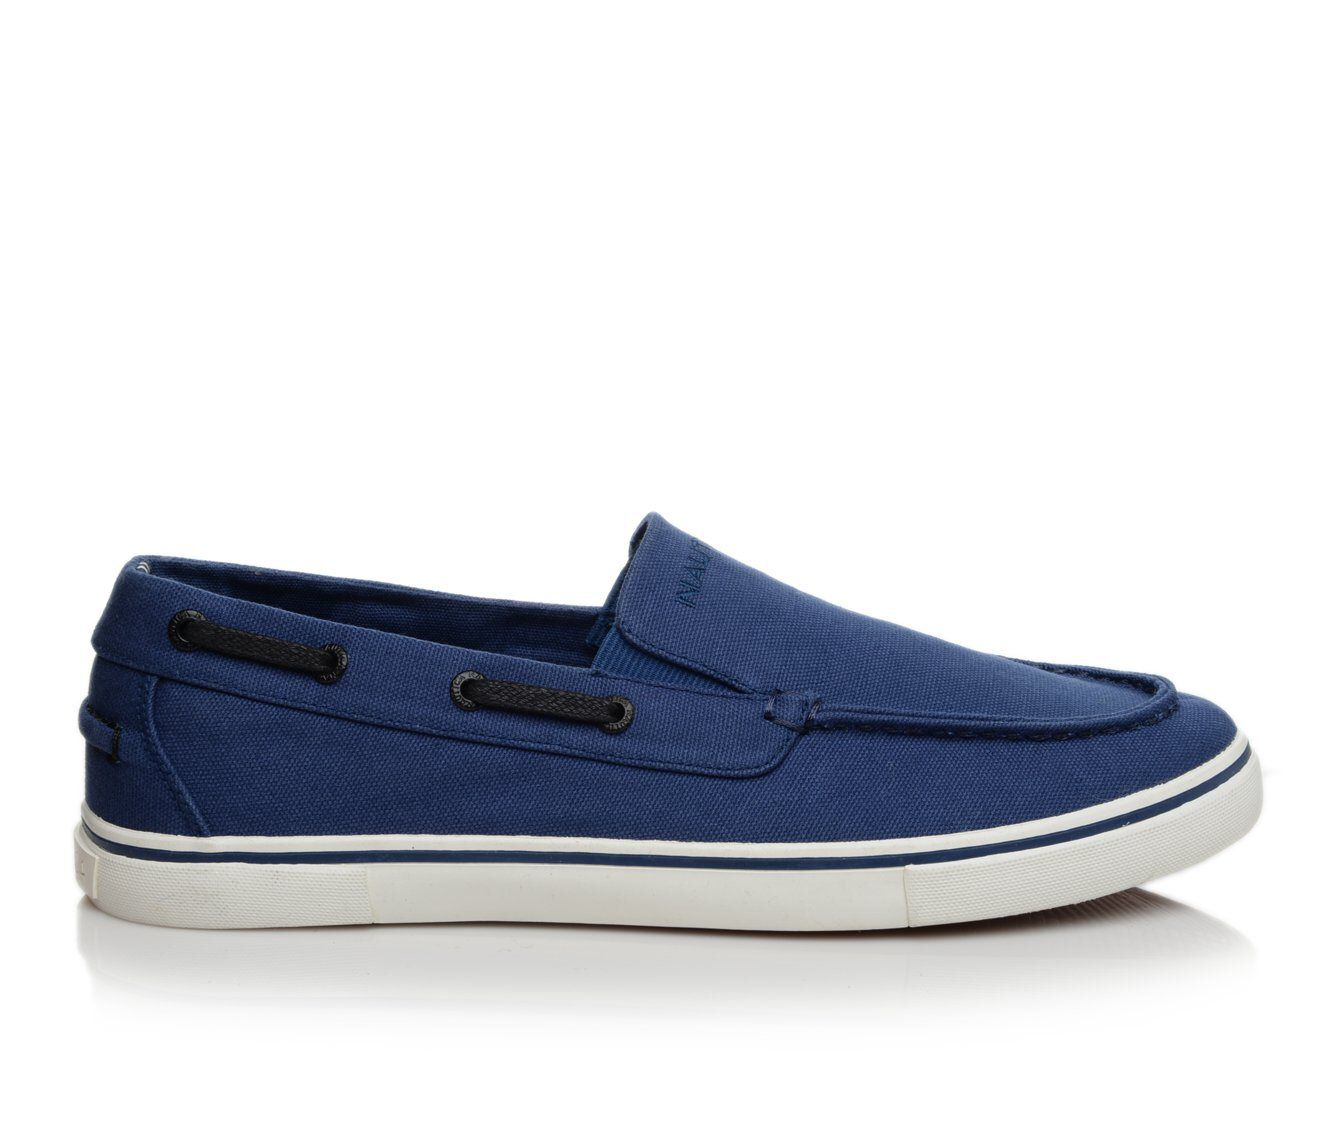 Men's Nautica Doubloon Slip On Casual Shoes Estate Blue 1